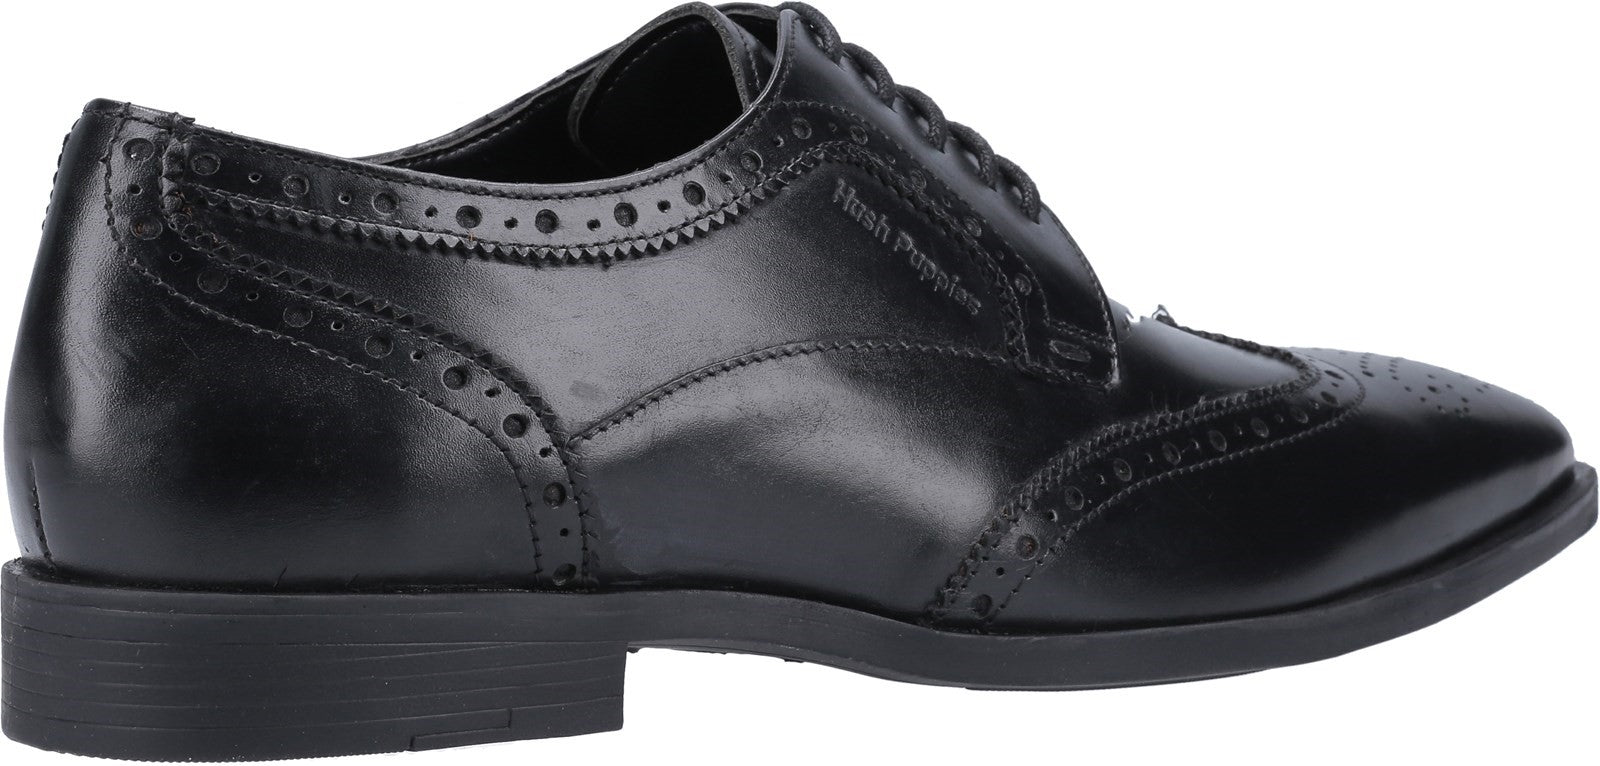 BLACK Brace Brogue Lace Up Shoe